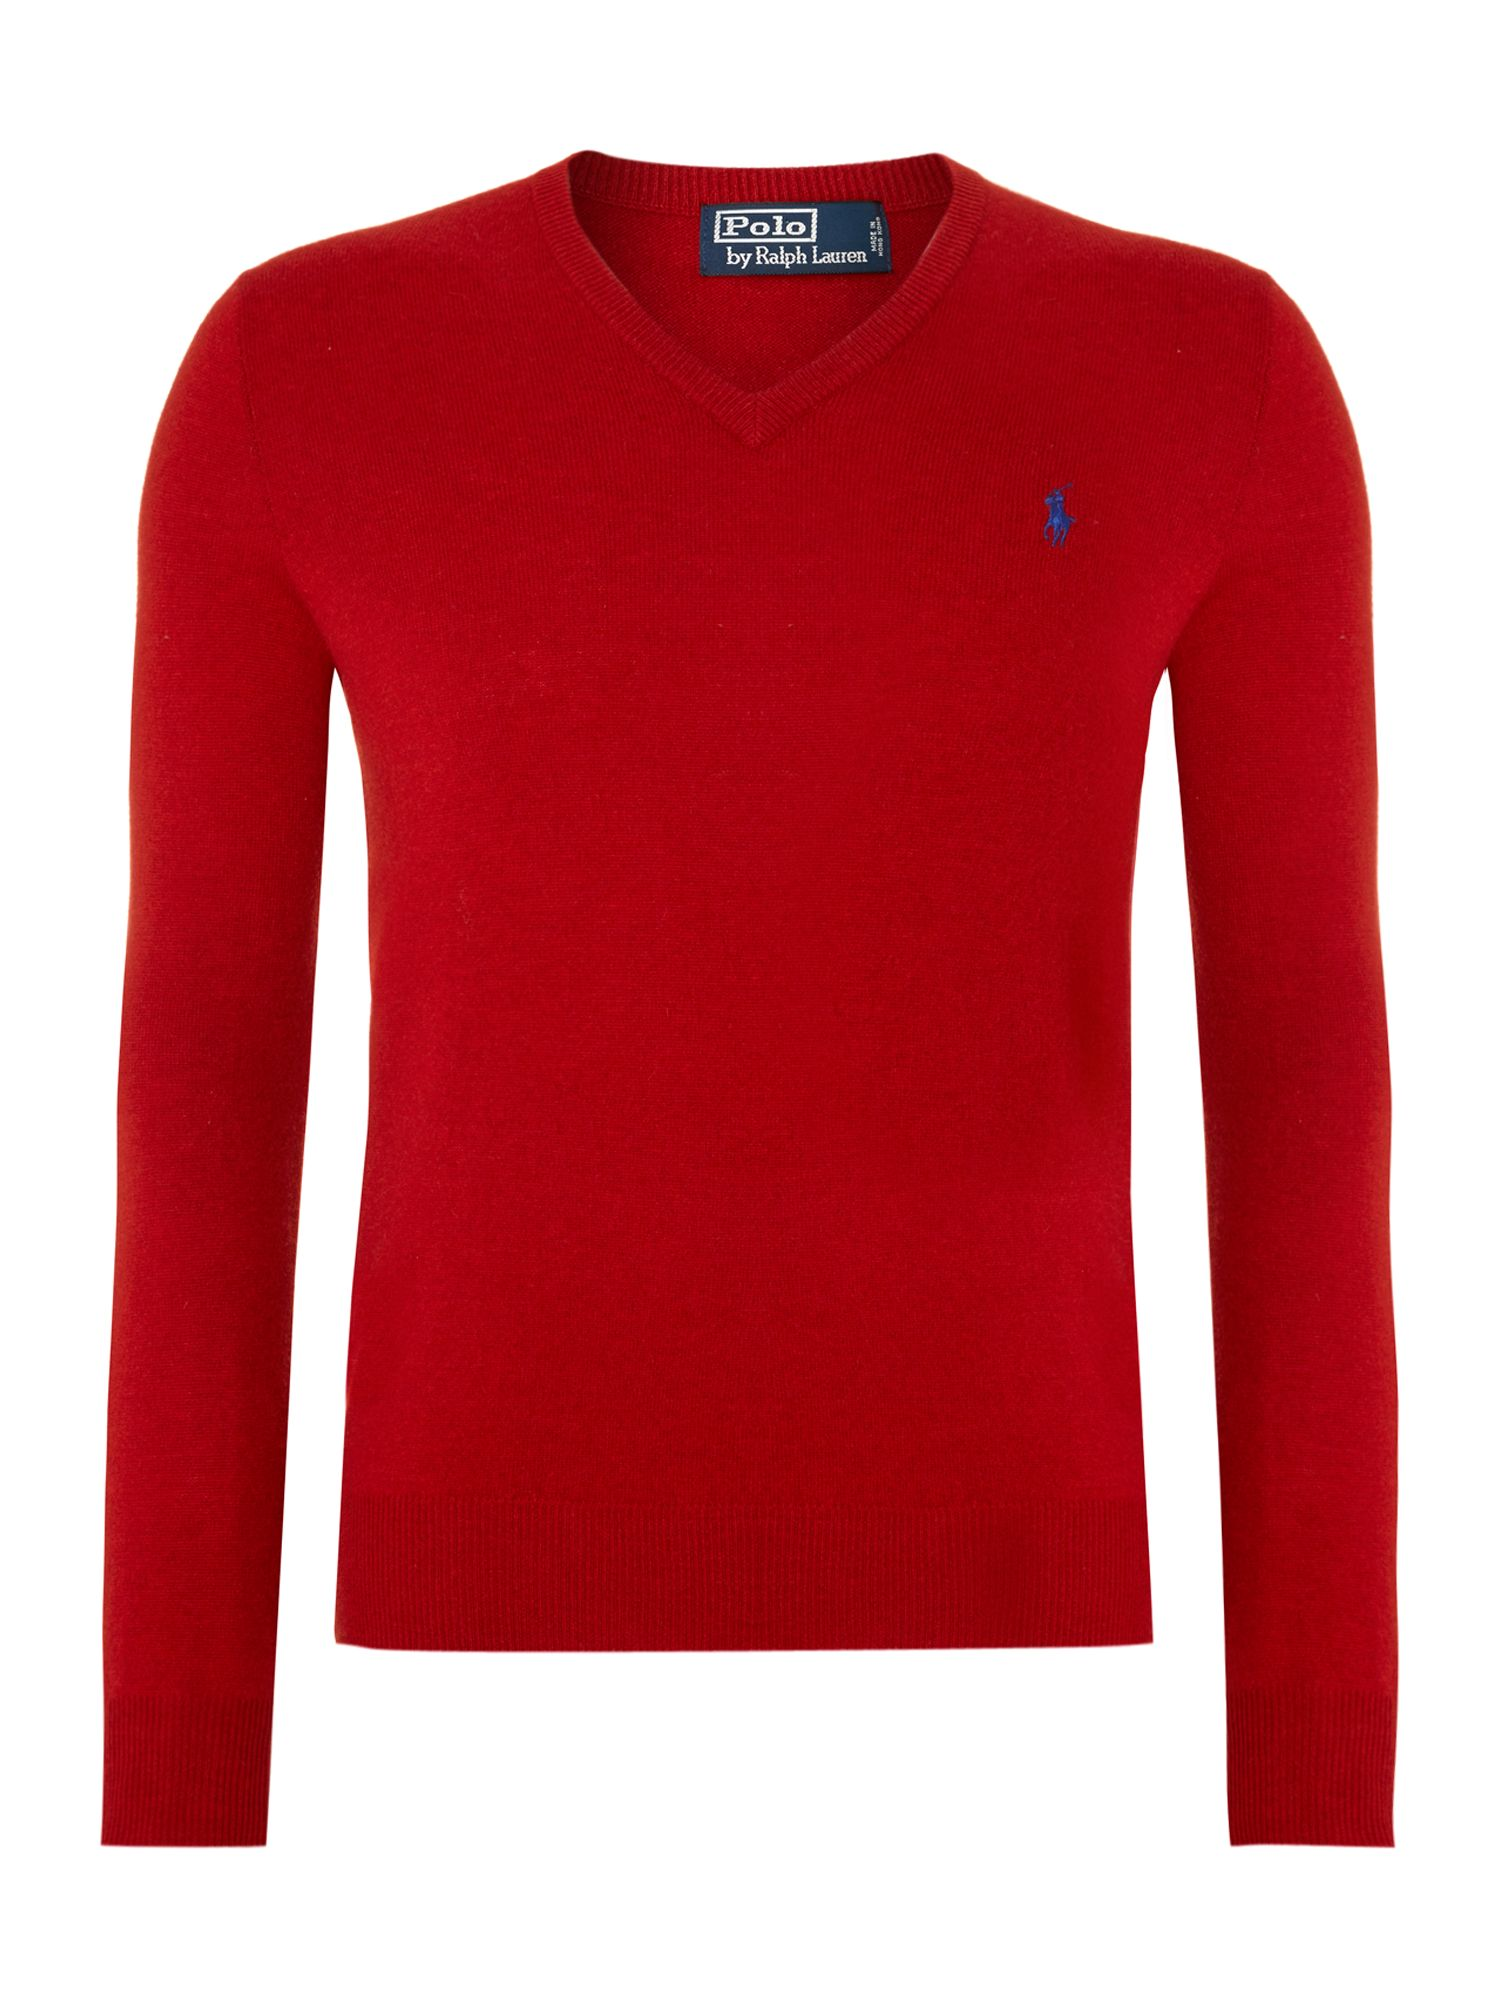 Classic merino wool v neck jumper